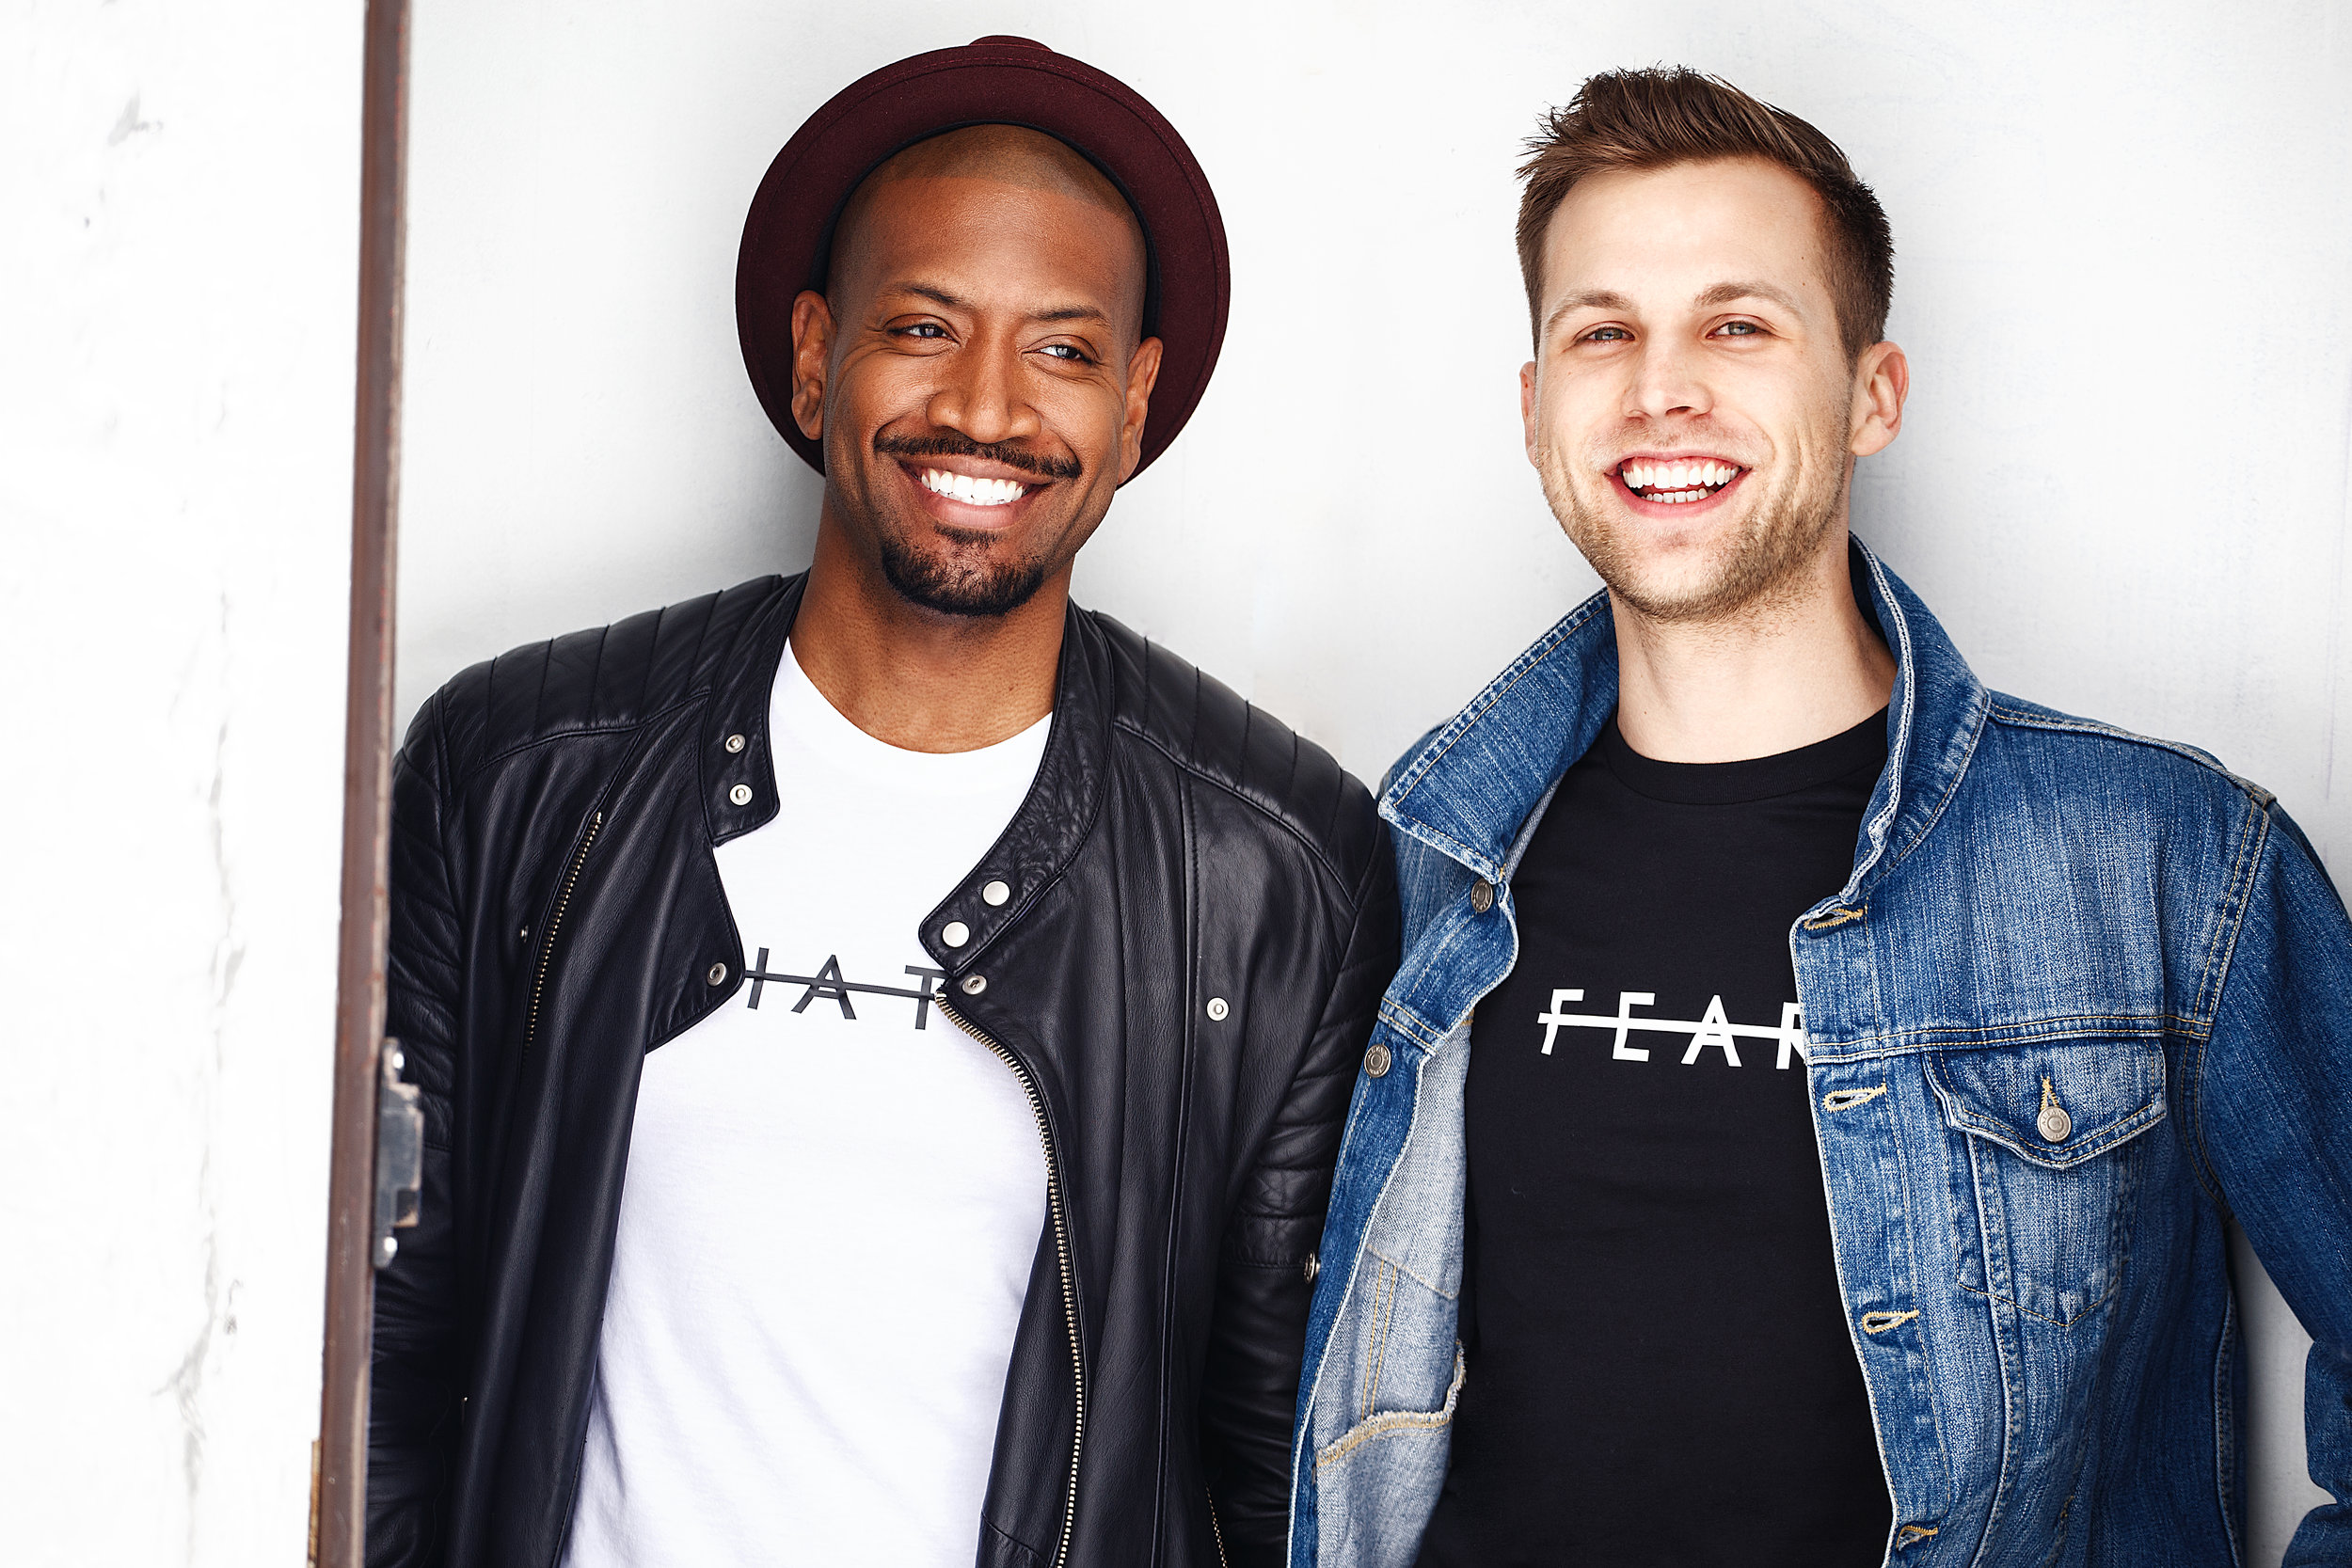 In 2016, Bryan Terrell Clark and Robert Raeder met in NYC - - One breakfast and a cup of coffee later, we knew that we were supposed to work together. As actors, we initially felt driven to help bring arts education to youth in the city. We quickly realized that we could create a brand that would help us deliver a powerful message of living free of labels, while we raised money for arts programs.